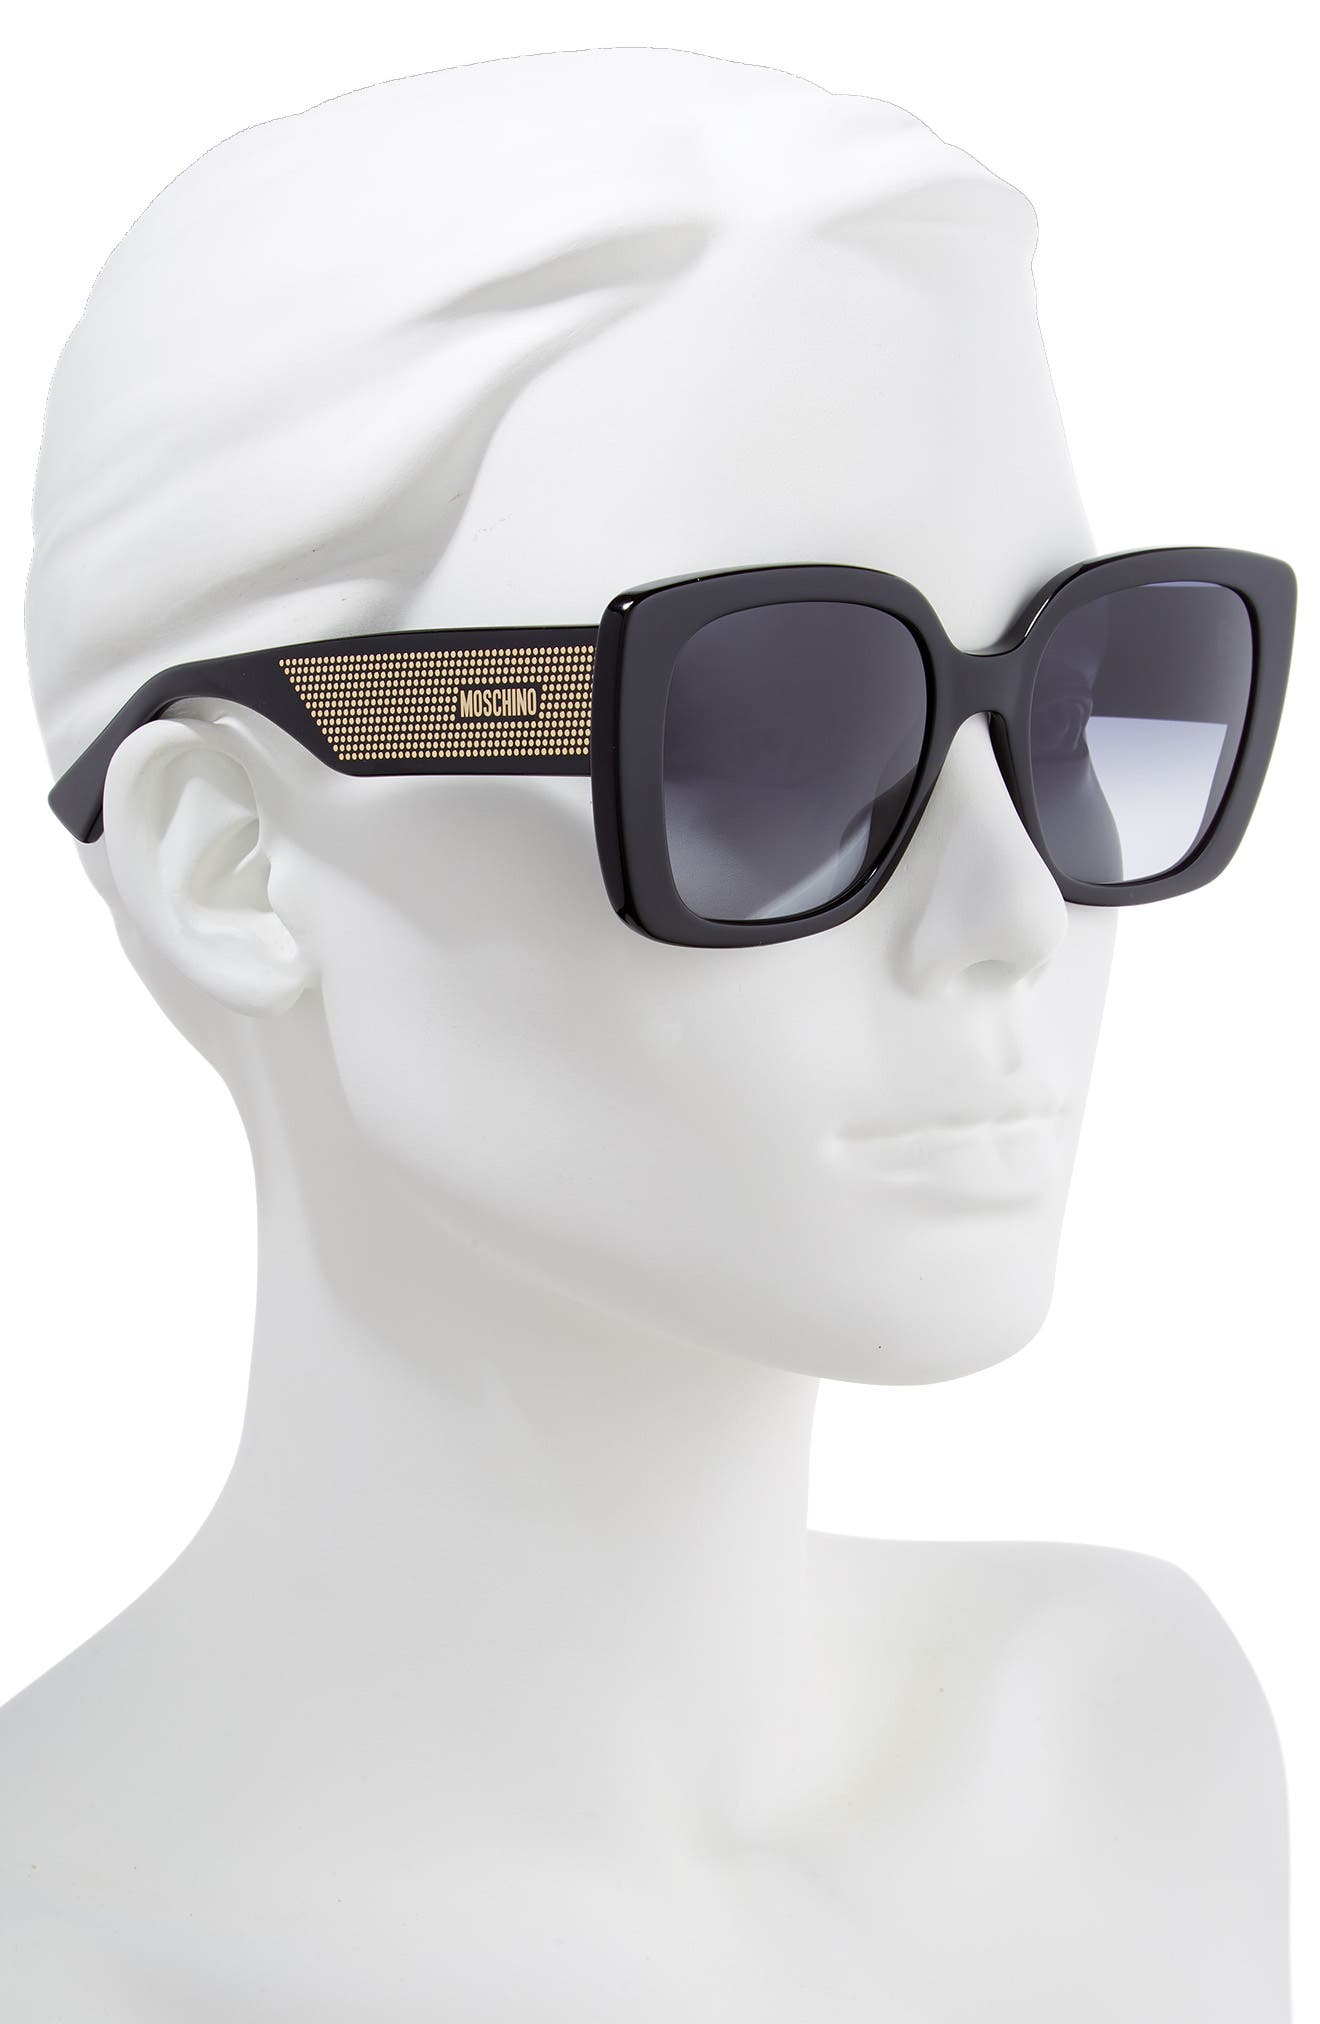 54mm Square Sunglasses,                             Alternate thumbnail 2, color,                             BLACK